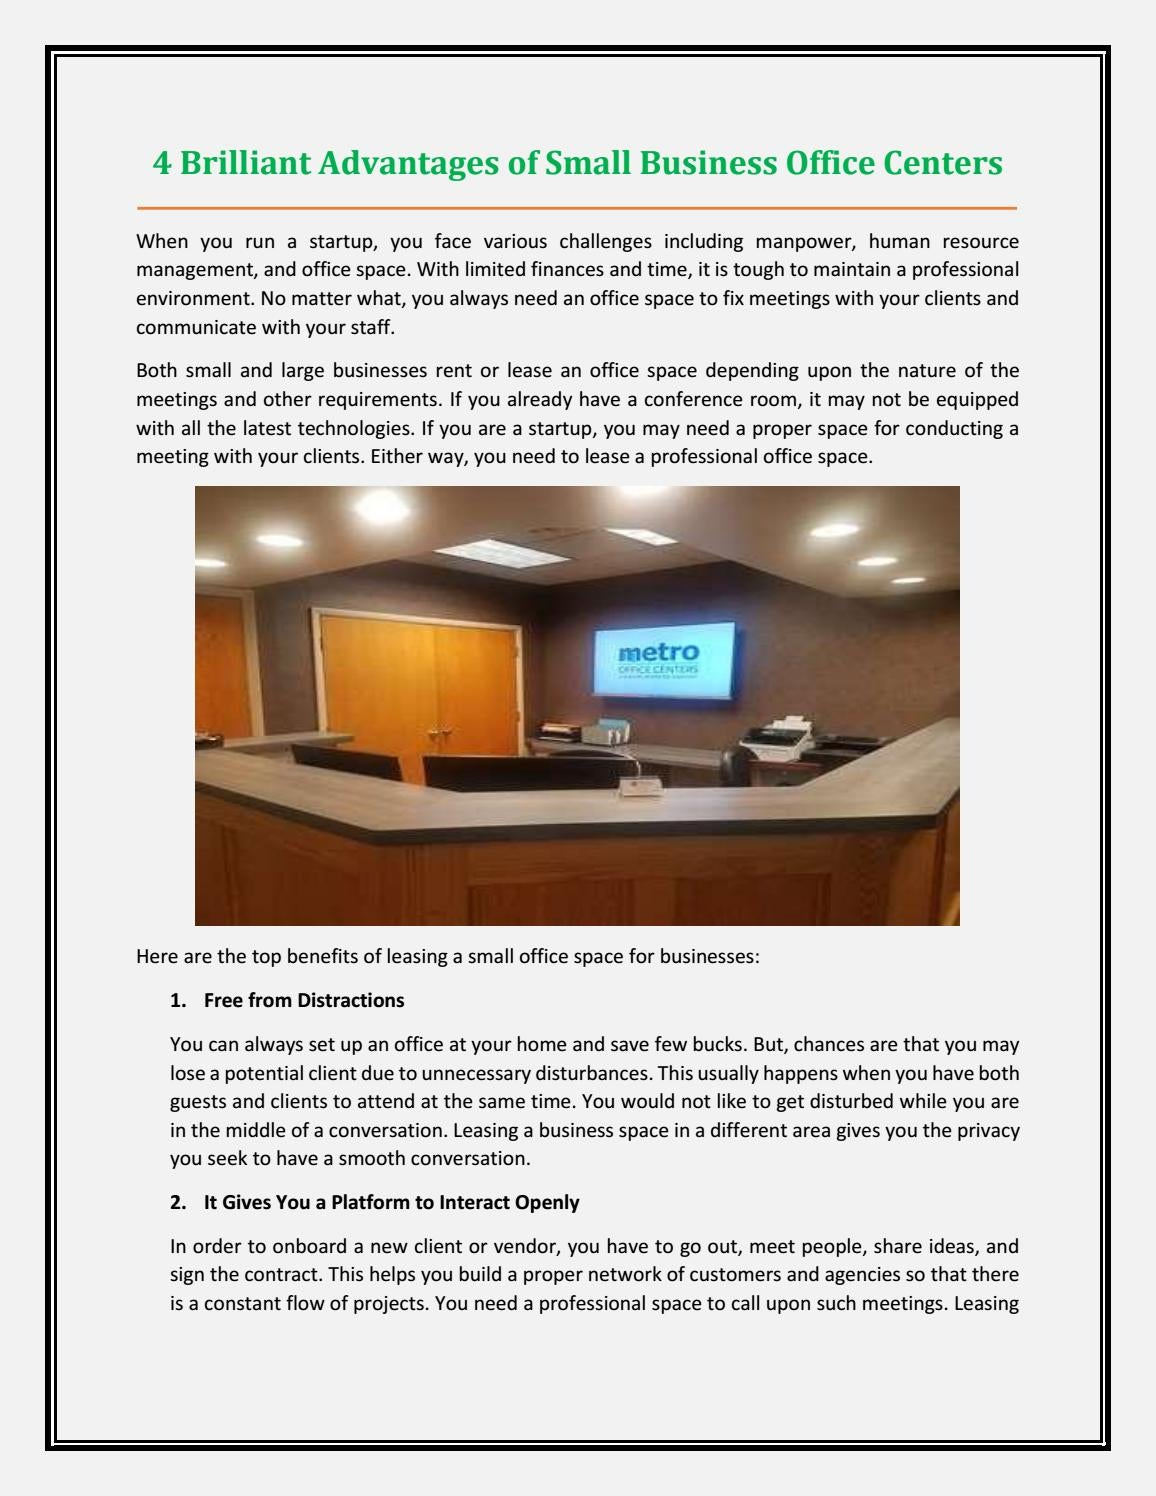 4 Brilliant Advantages Of Small Business Office Centers By Metro Office Centers Issuu